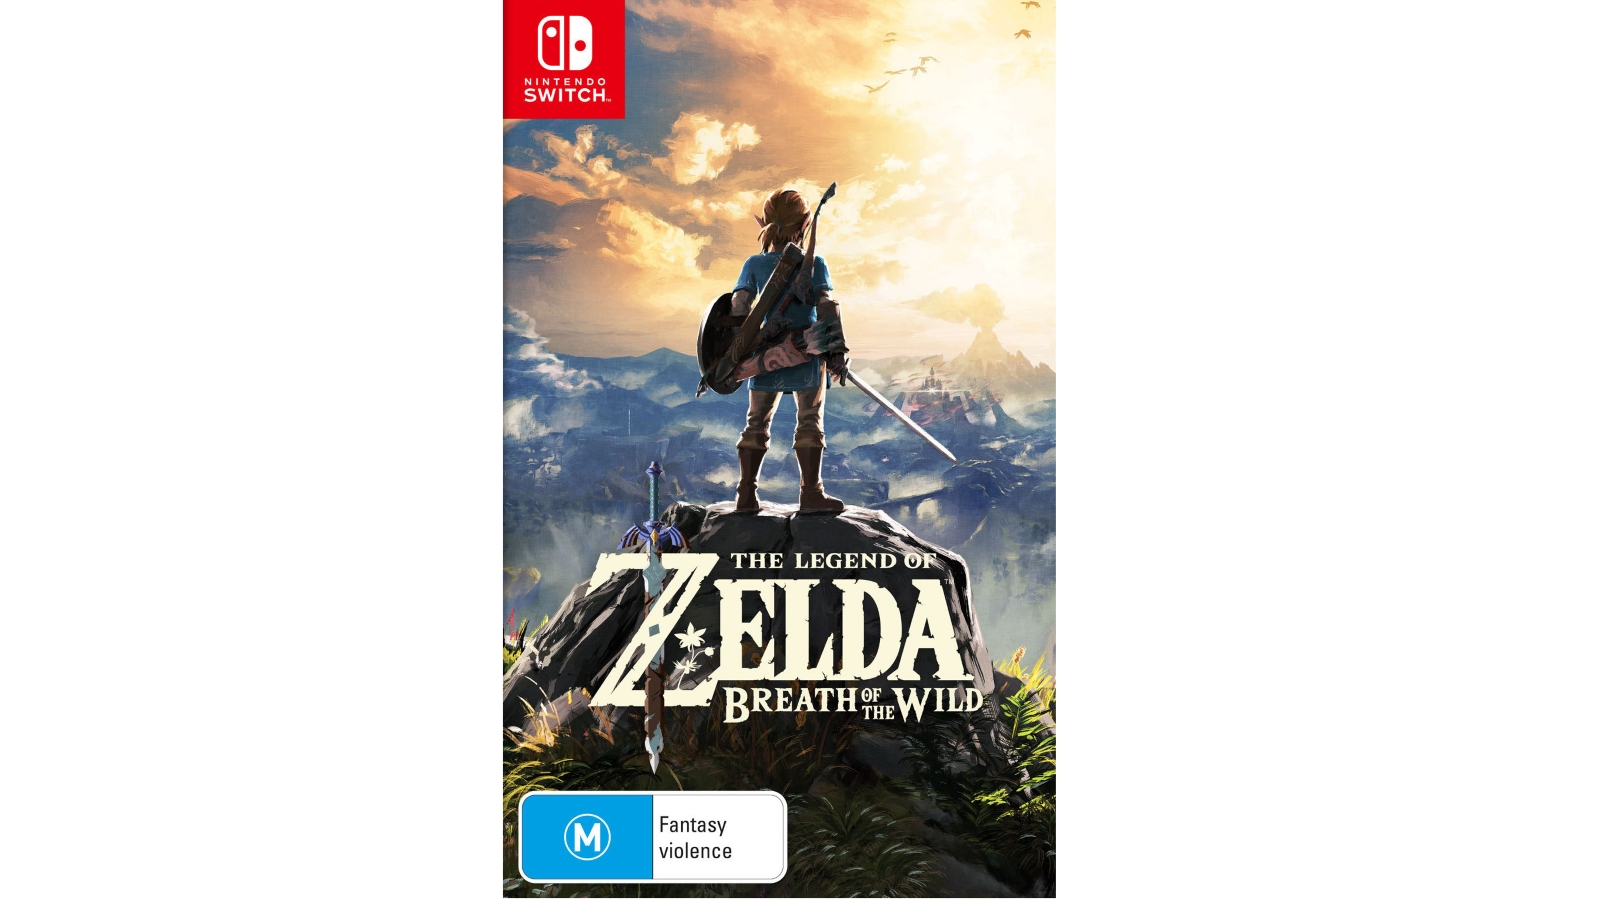 Nintendo The Legend of Zelda Breath of the Wild Nintendo Switch Game